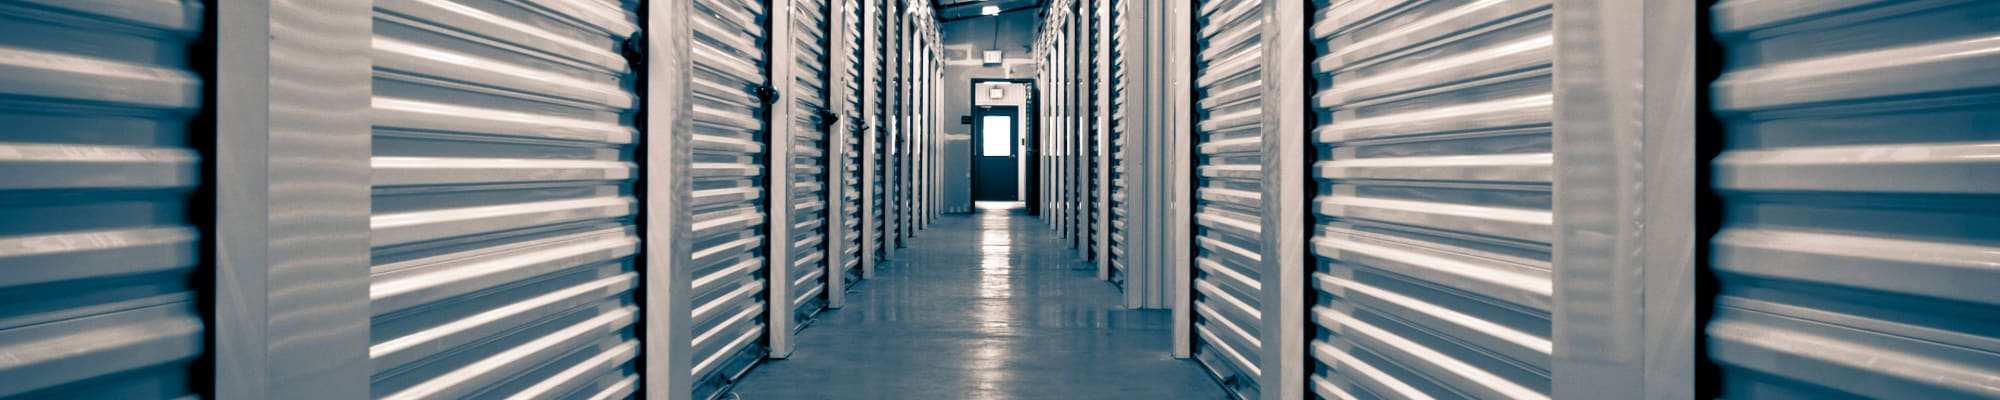 Reviews for Store It All Self Storage - Affordable in Laredo, Texas